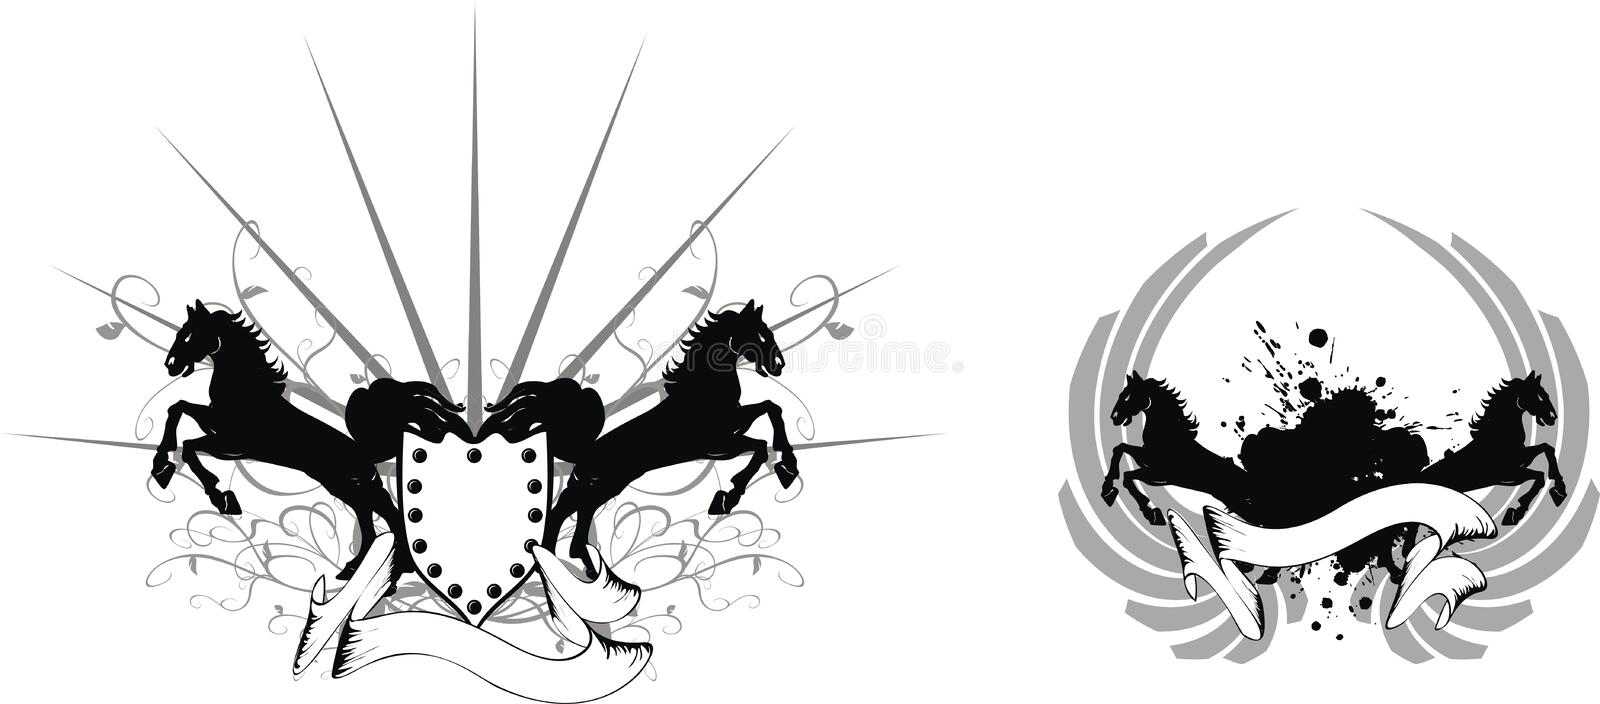 Heraldic horse coat of arms set1 royalty free illustration